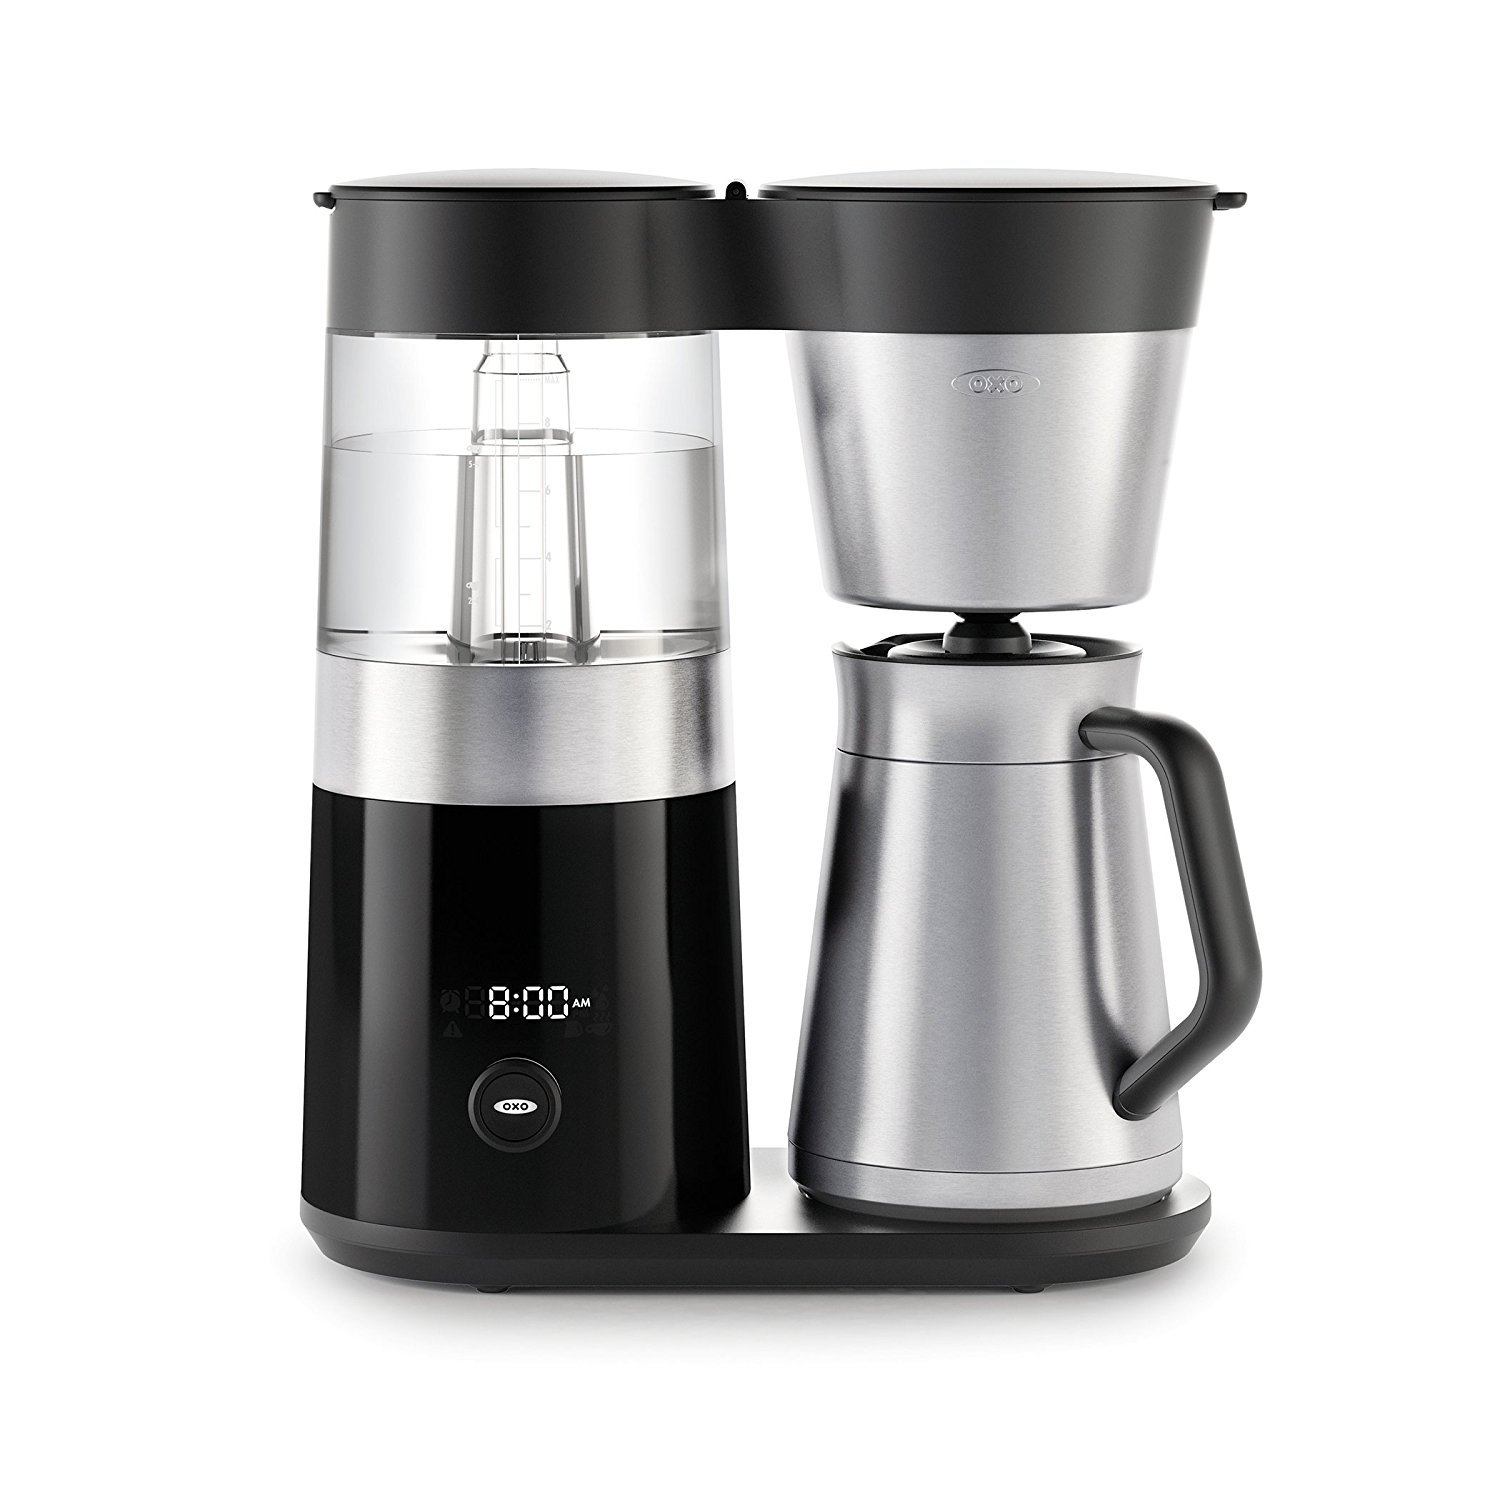 OXO 8710100 On Barista Brain 9 Cup Coffee Maker